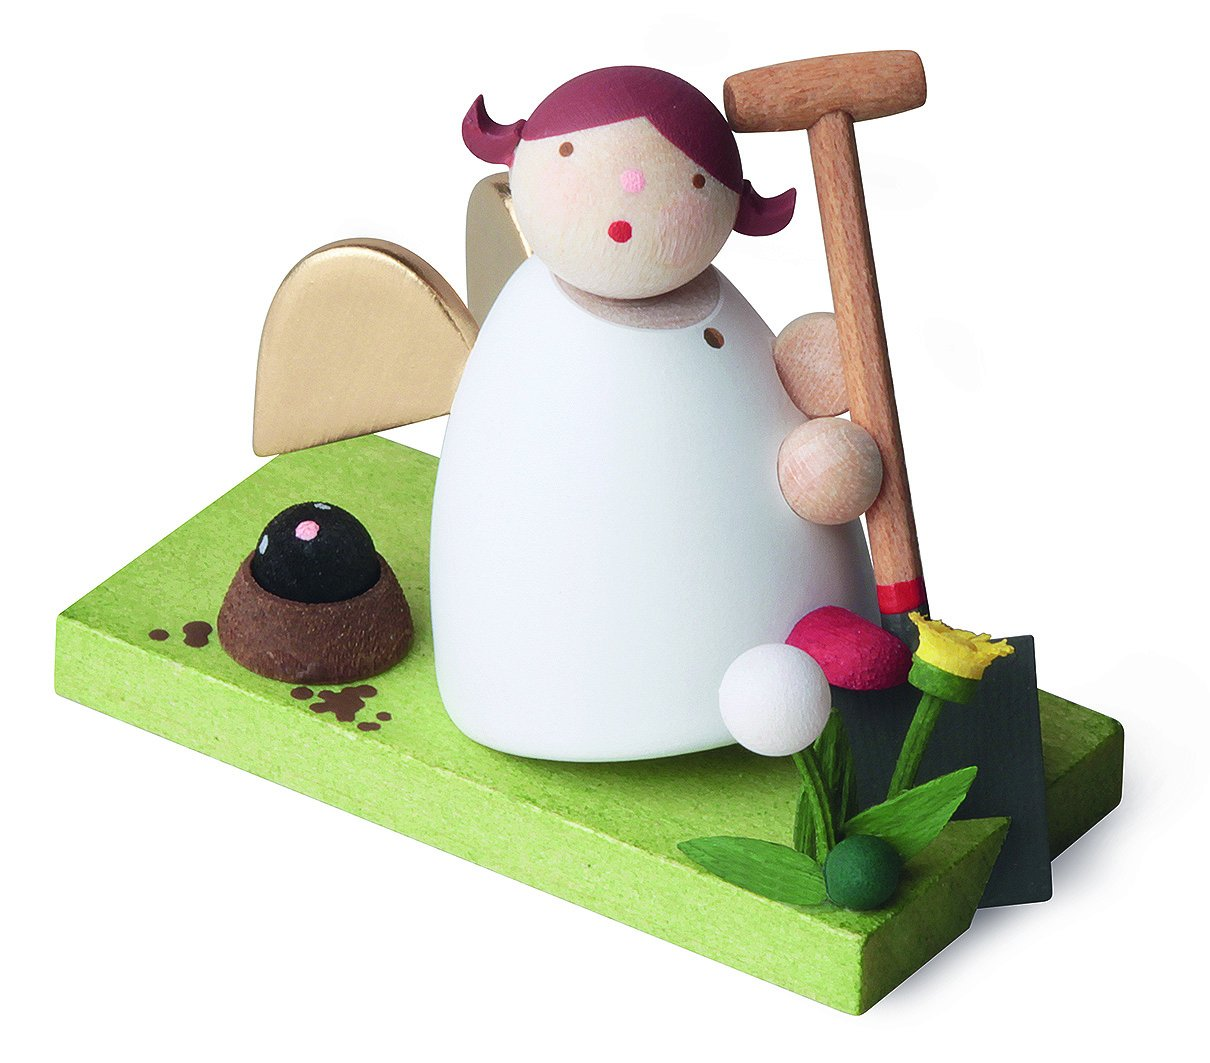 Little Angel Figurine - Guardian Angel Gardening with Spade